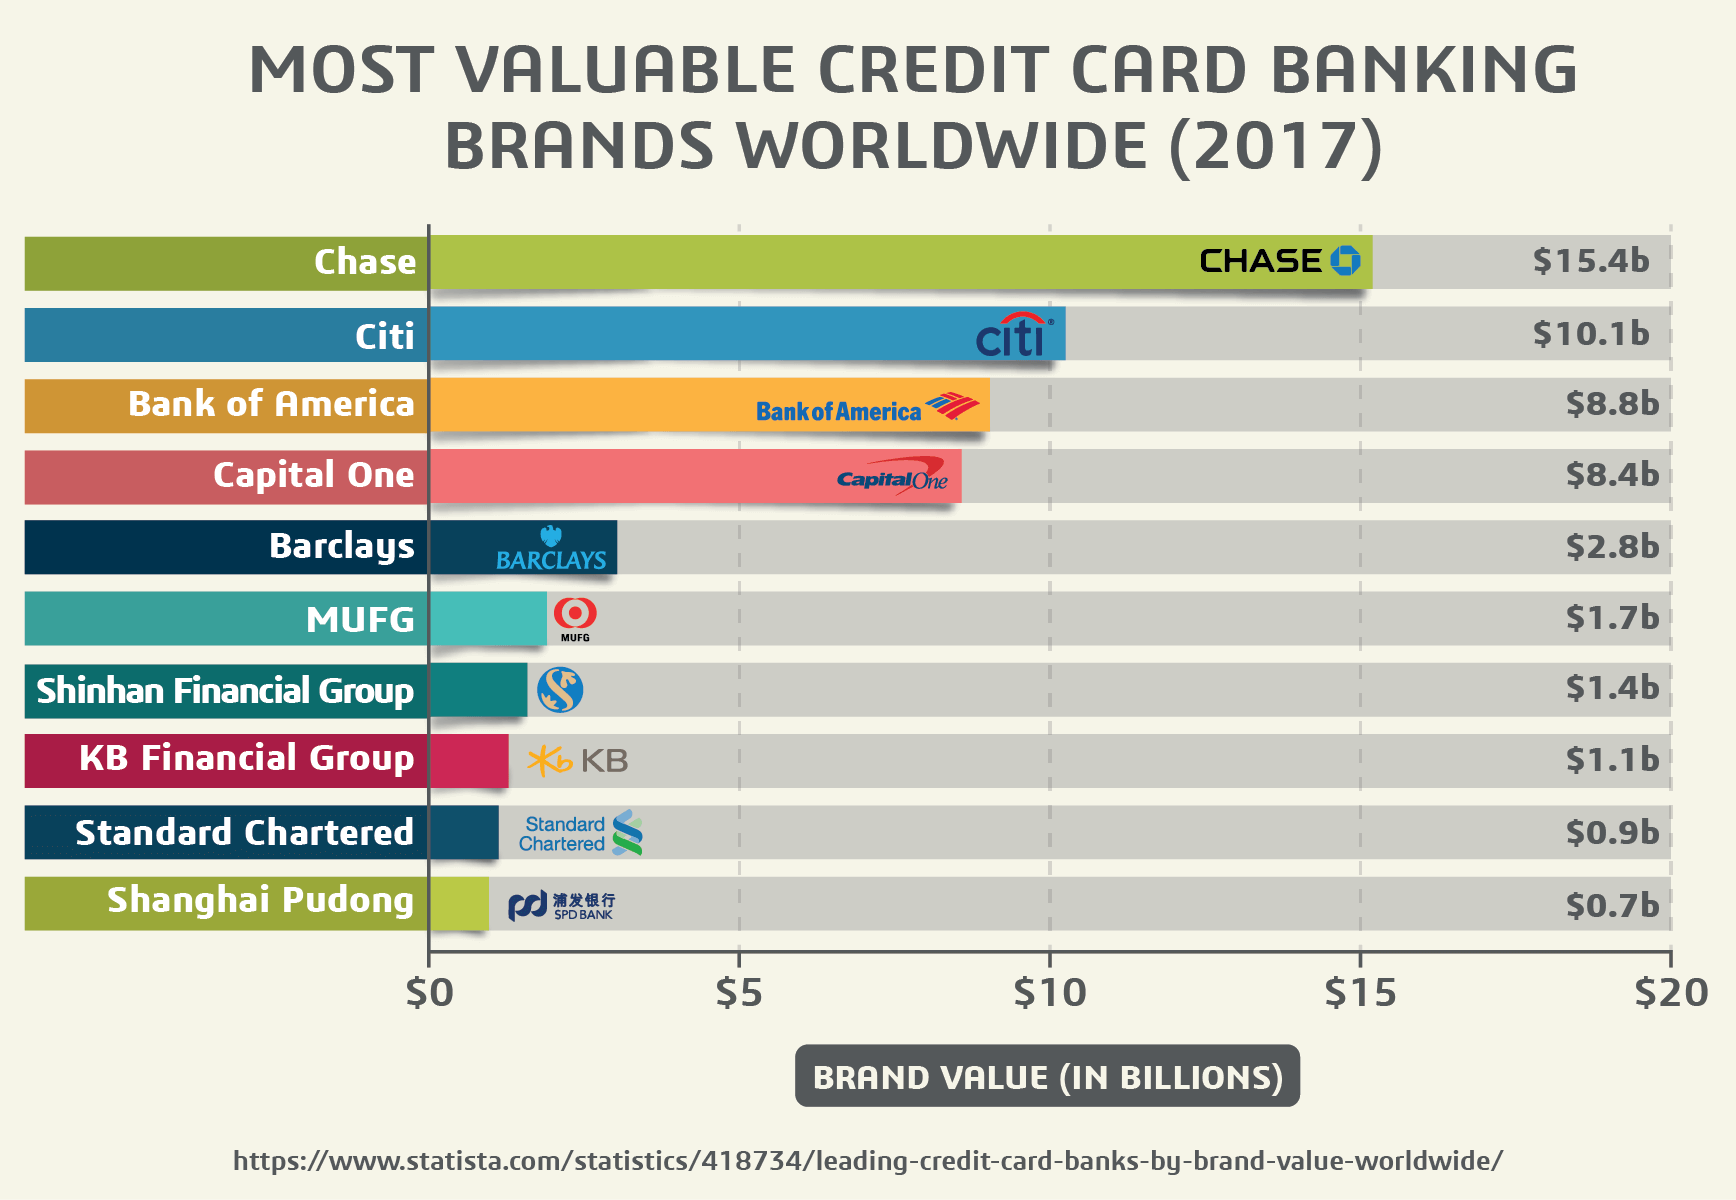 Most Valuable Credit Card Banking Brands Worldwide (2017)